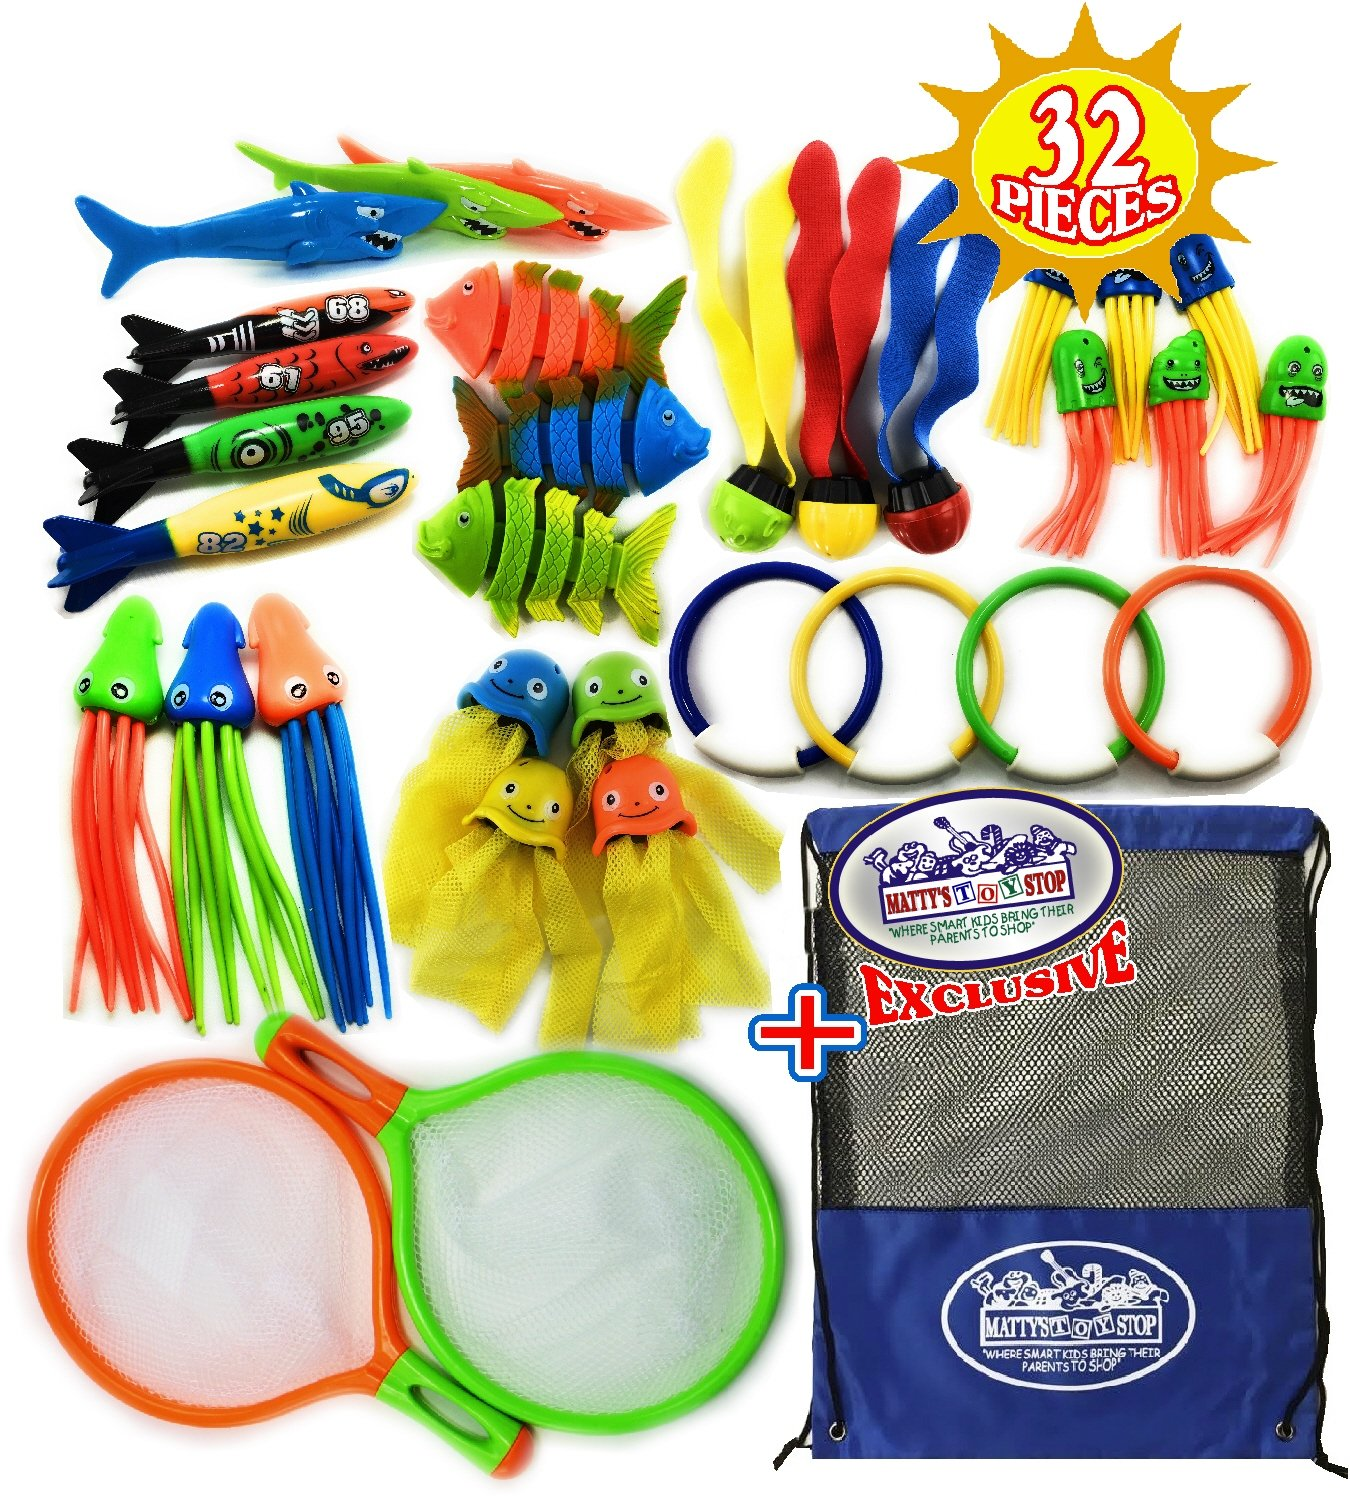 Matty's Toy Stop 32 Piece Ultimate Dive Set for Diving/Swimming Pools Featuring Dive Rings, Balls, Fish, Torpedo, Shark, Octopus, Jellyfish, Fishing Nets & Bonus Storage Bag